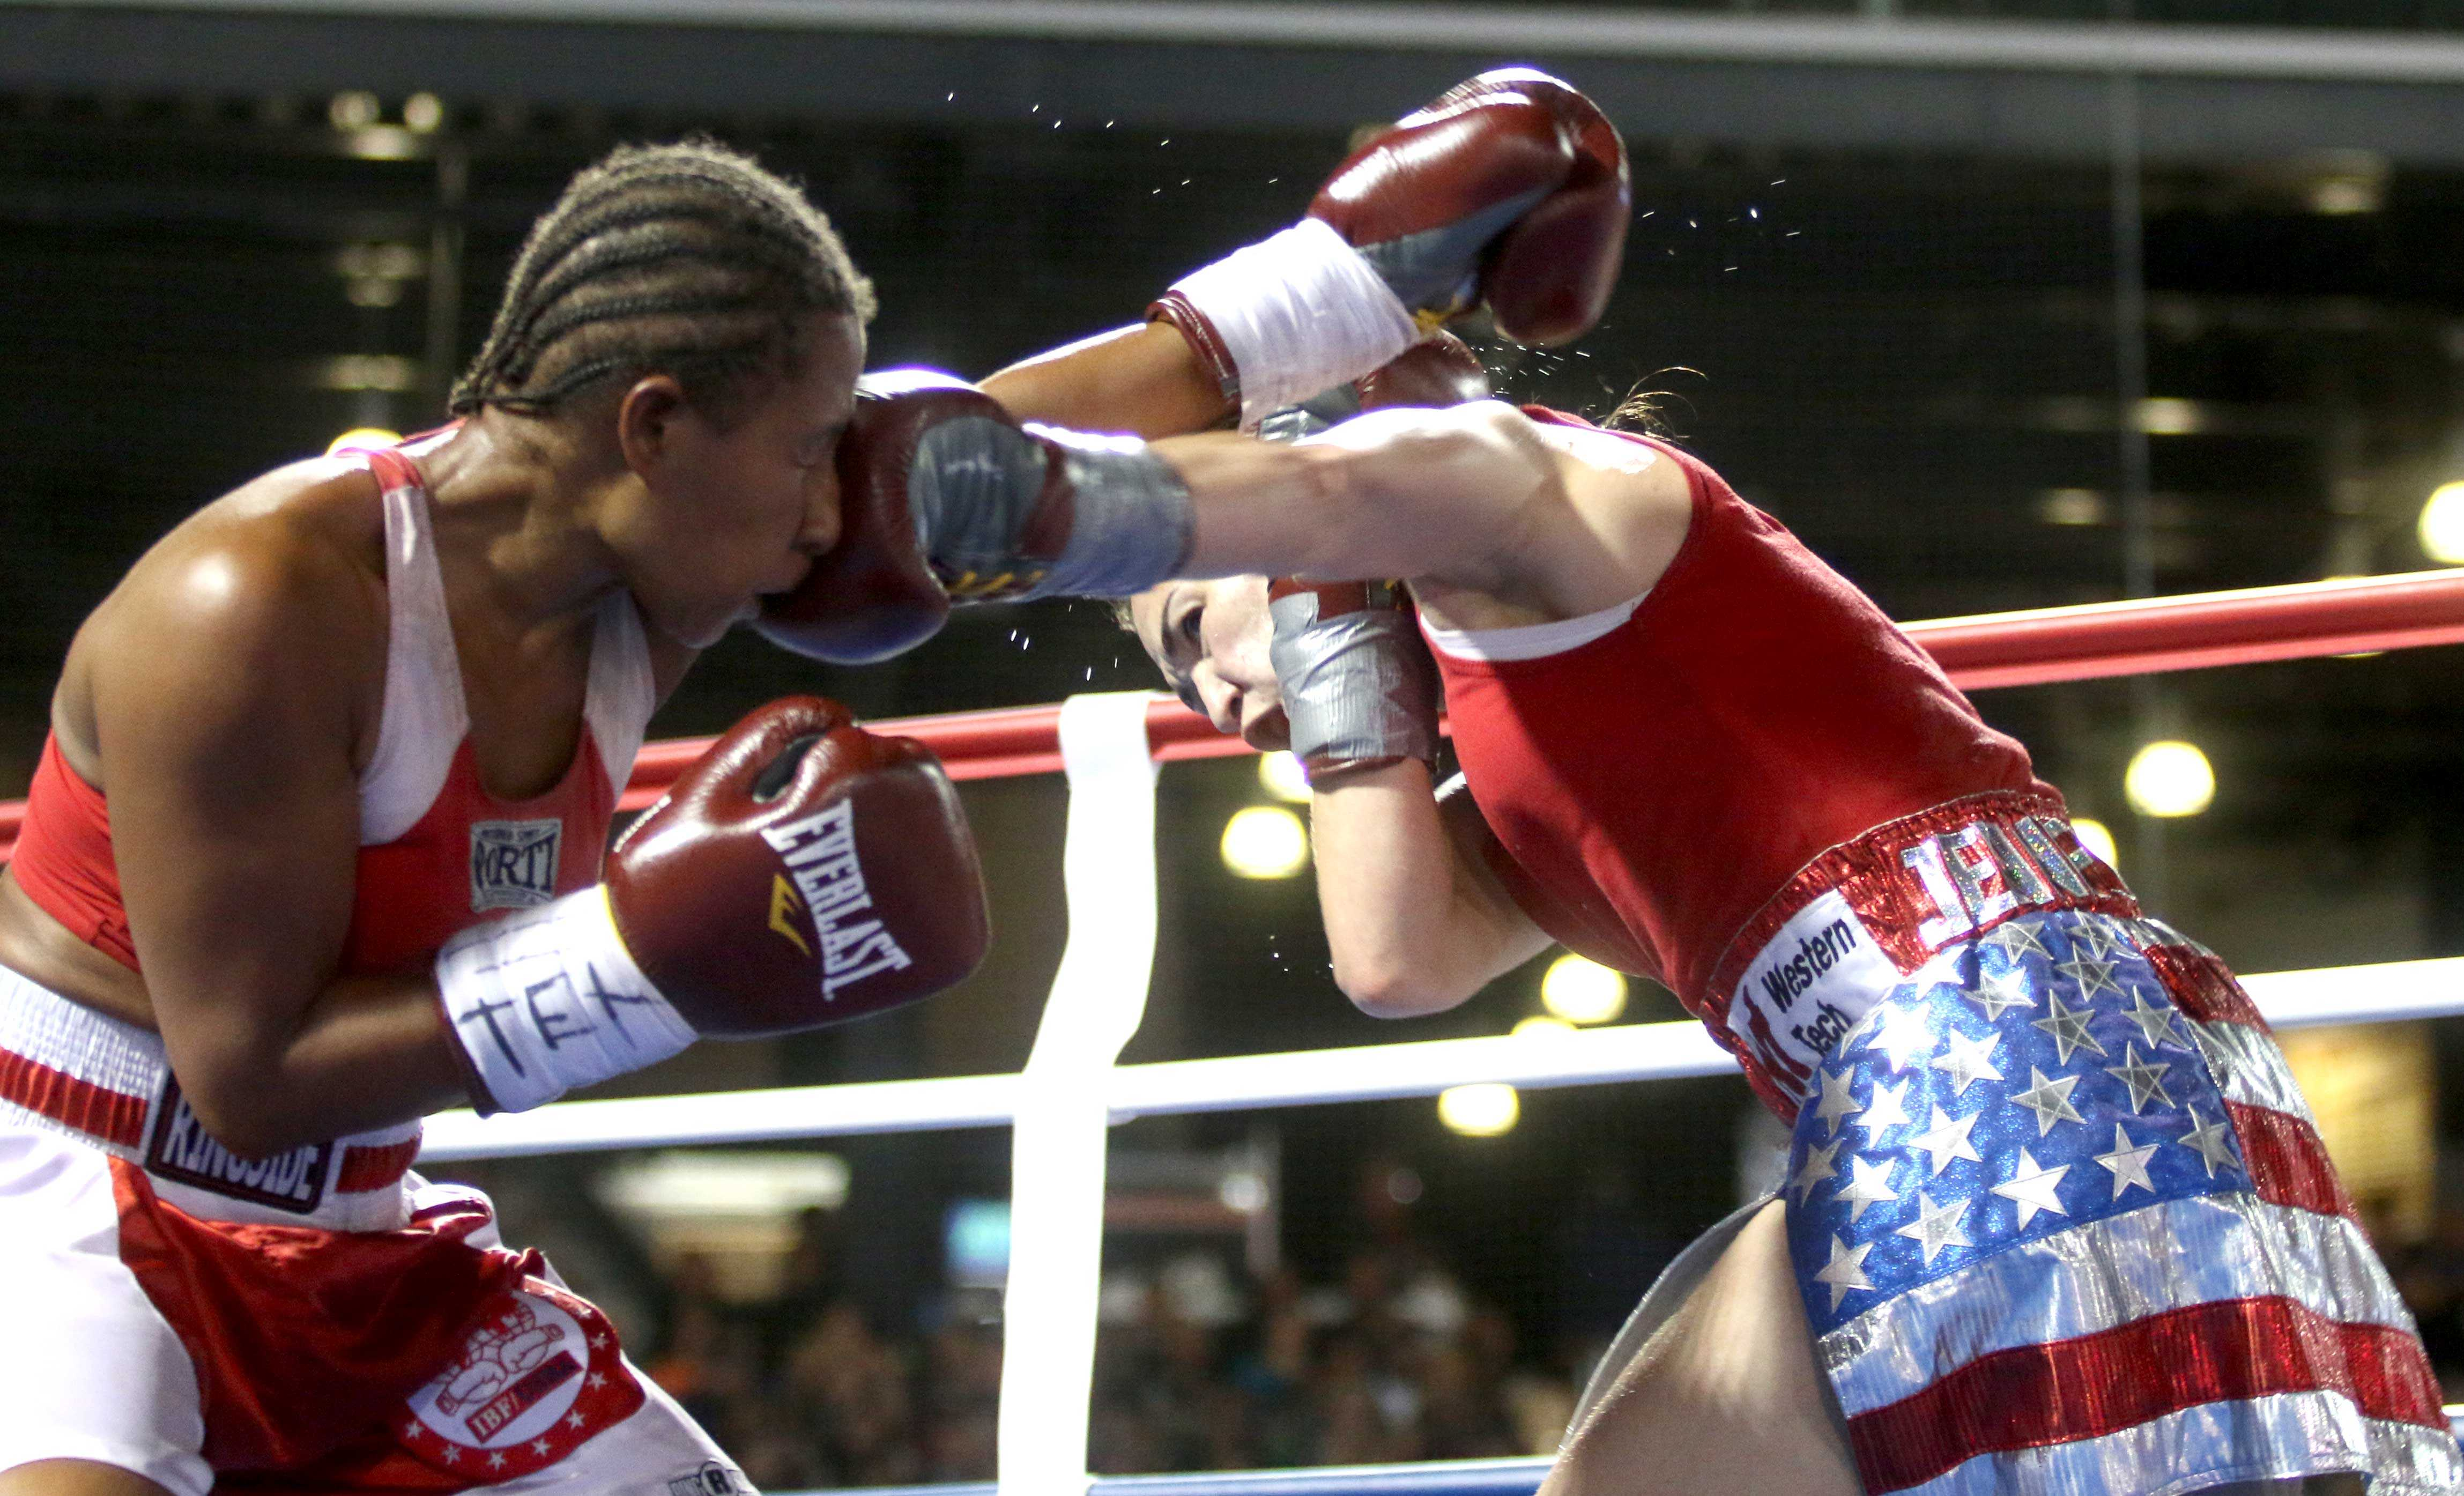 Jennifer Han (right) became El Paso's first boxing world champion in front of 1,500 fans at Southwest University Park on Apr. 30, 2016.